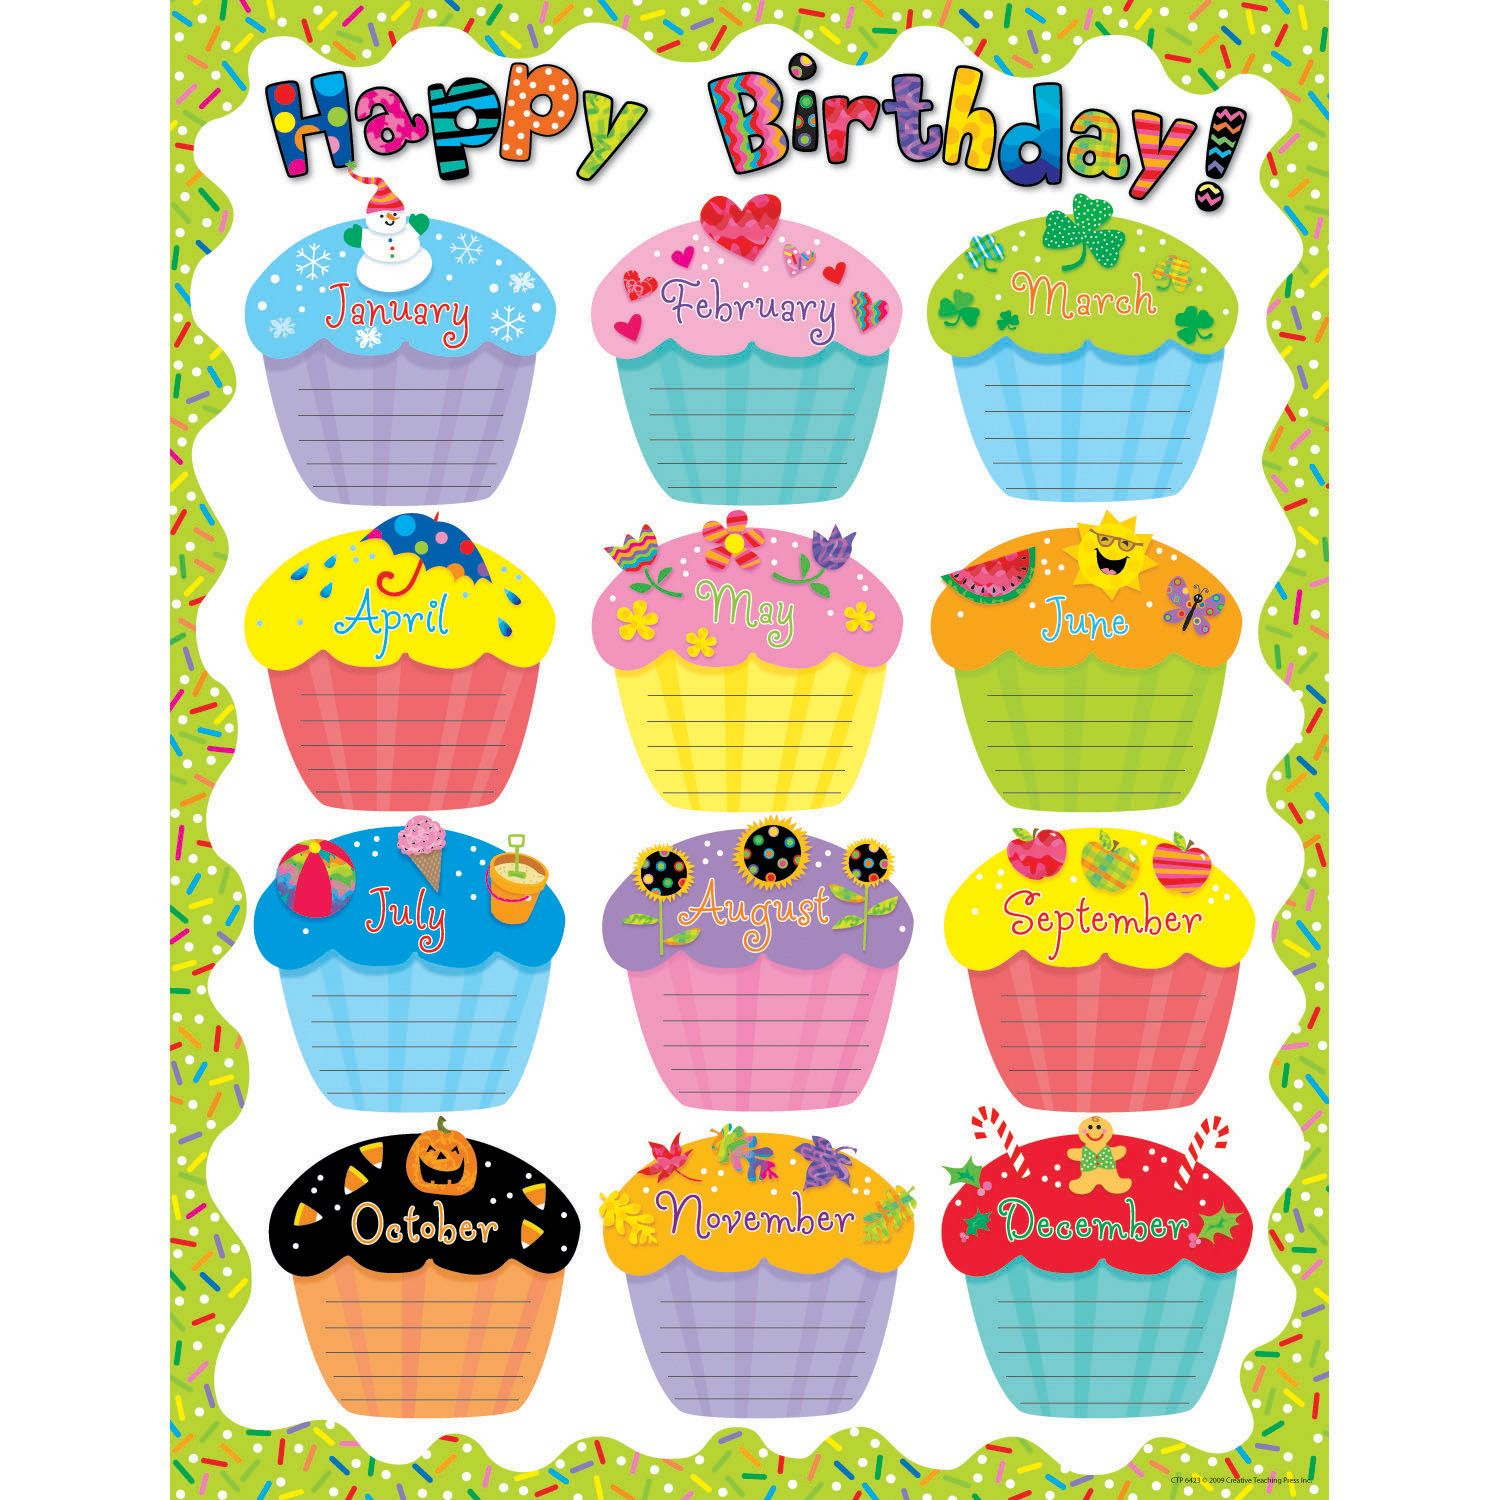 Clipart Birthday Chart for Free Printable Birthday Chart